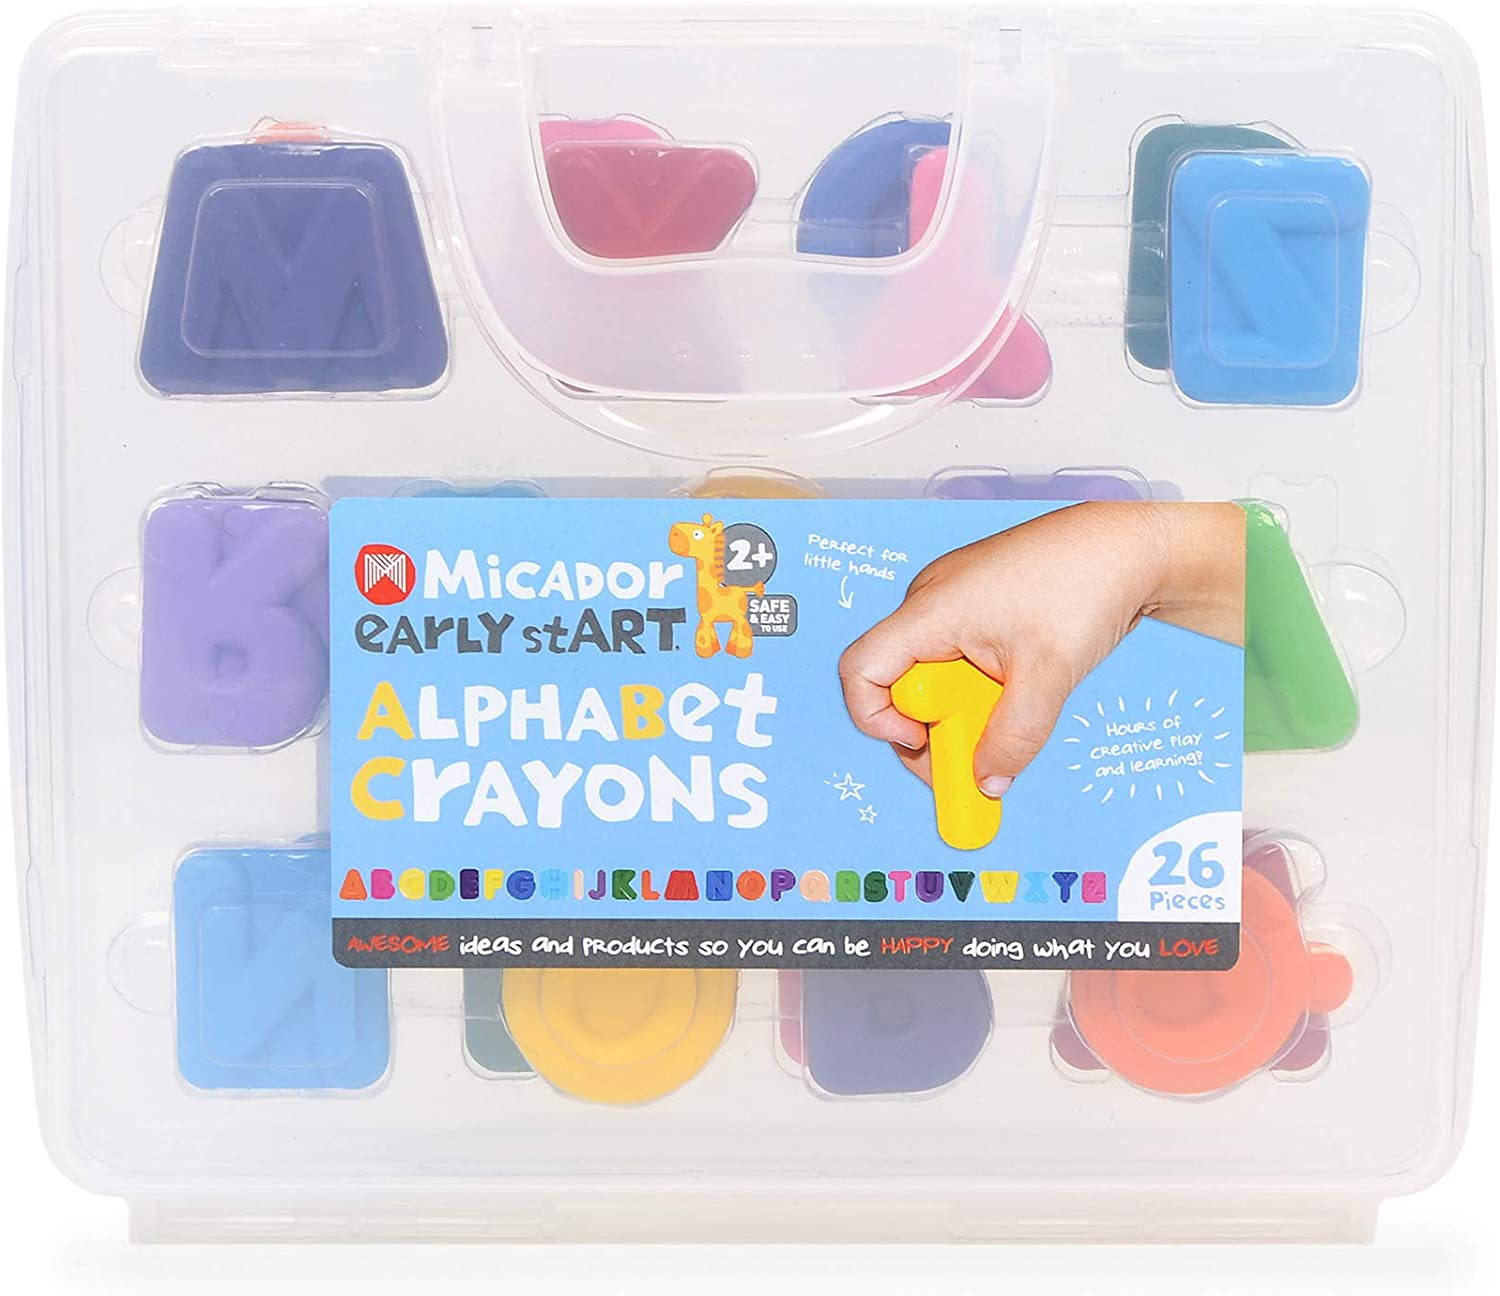 In a popularity Micador early stART Assorted Crayons latest